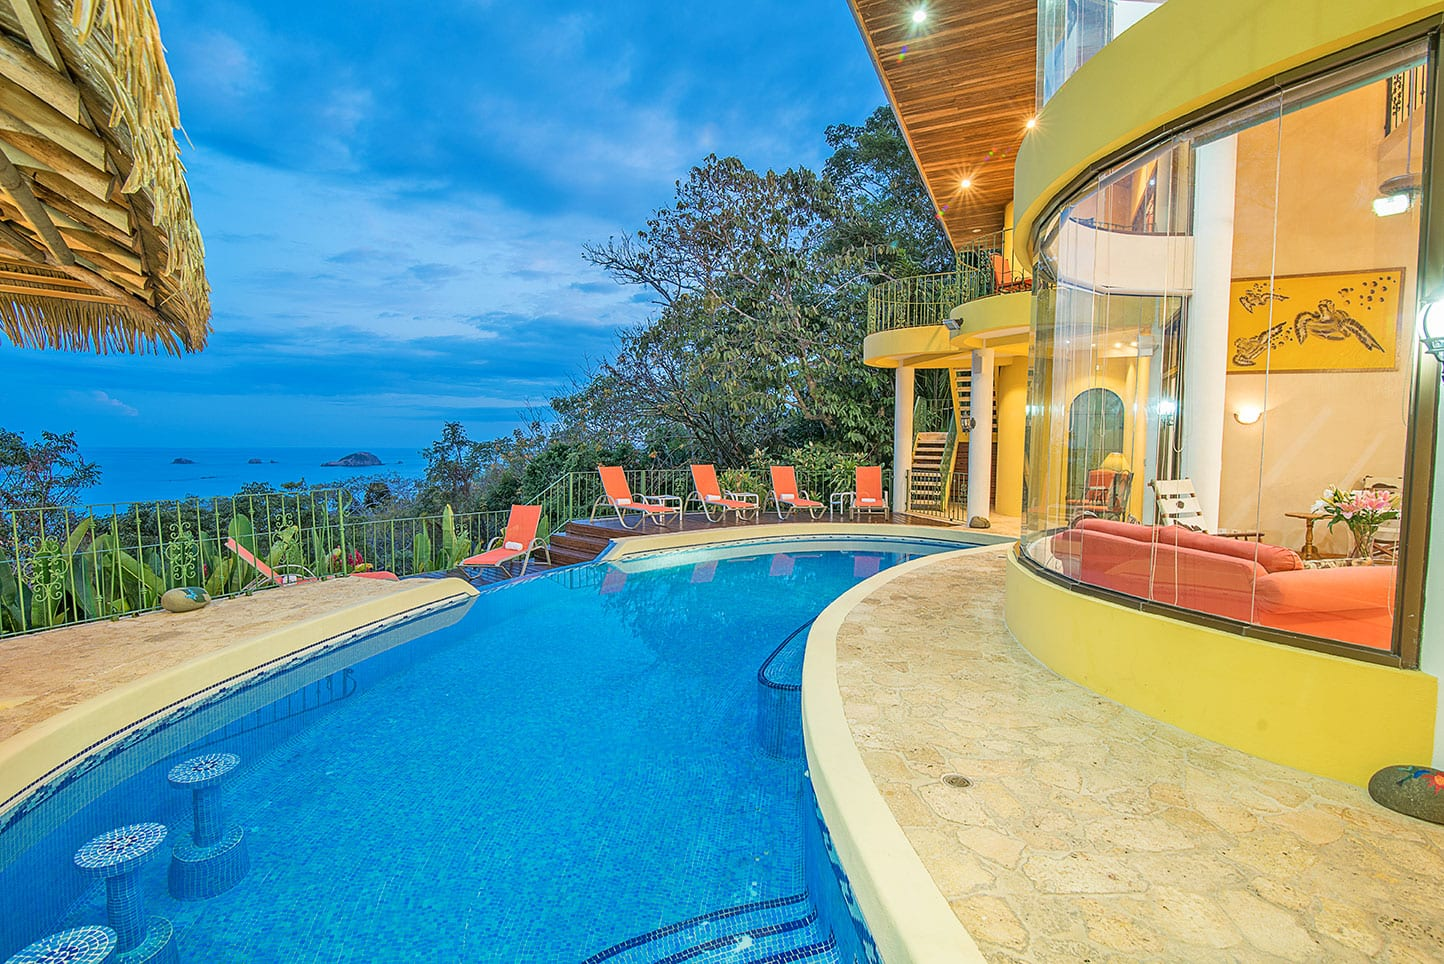 1 ACRE - 7 Bedroom Manuel Antonio Park Ocean View Home With Pool!!!!